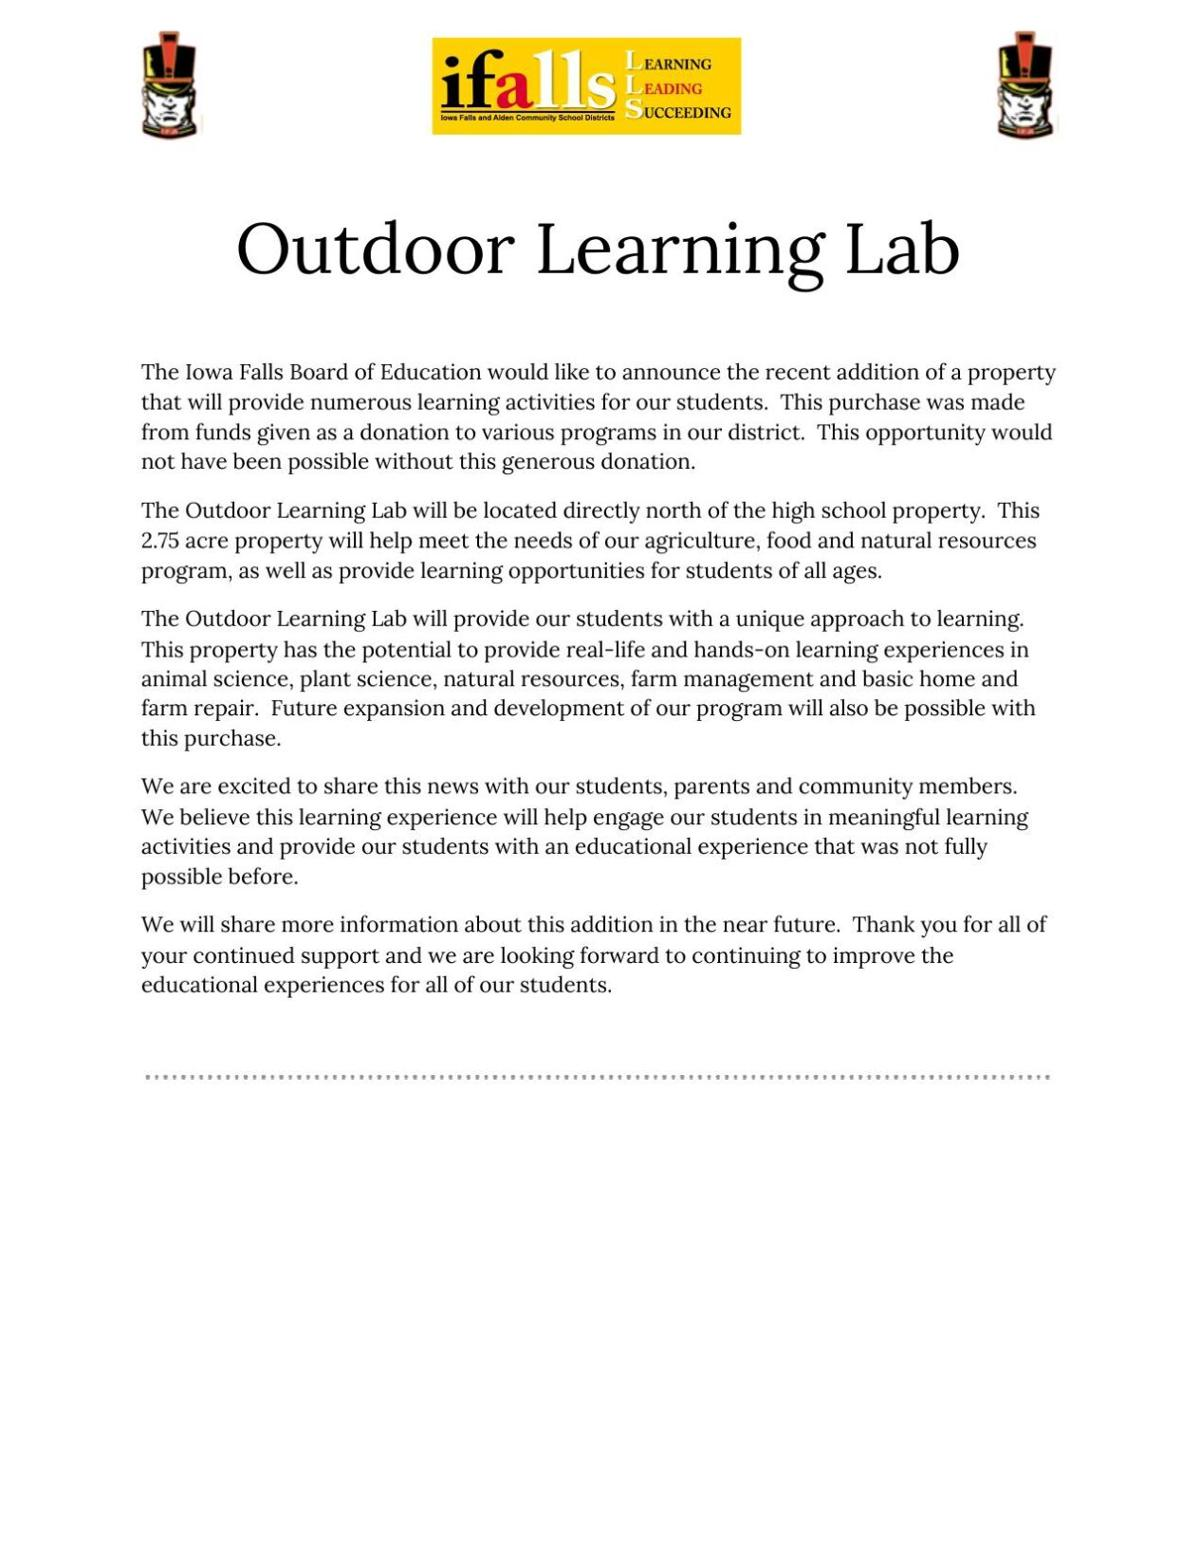 Learning Lab Press Release